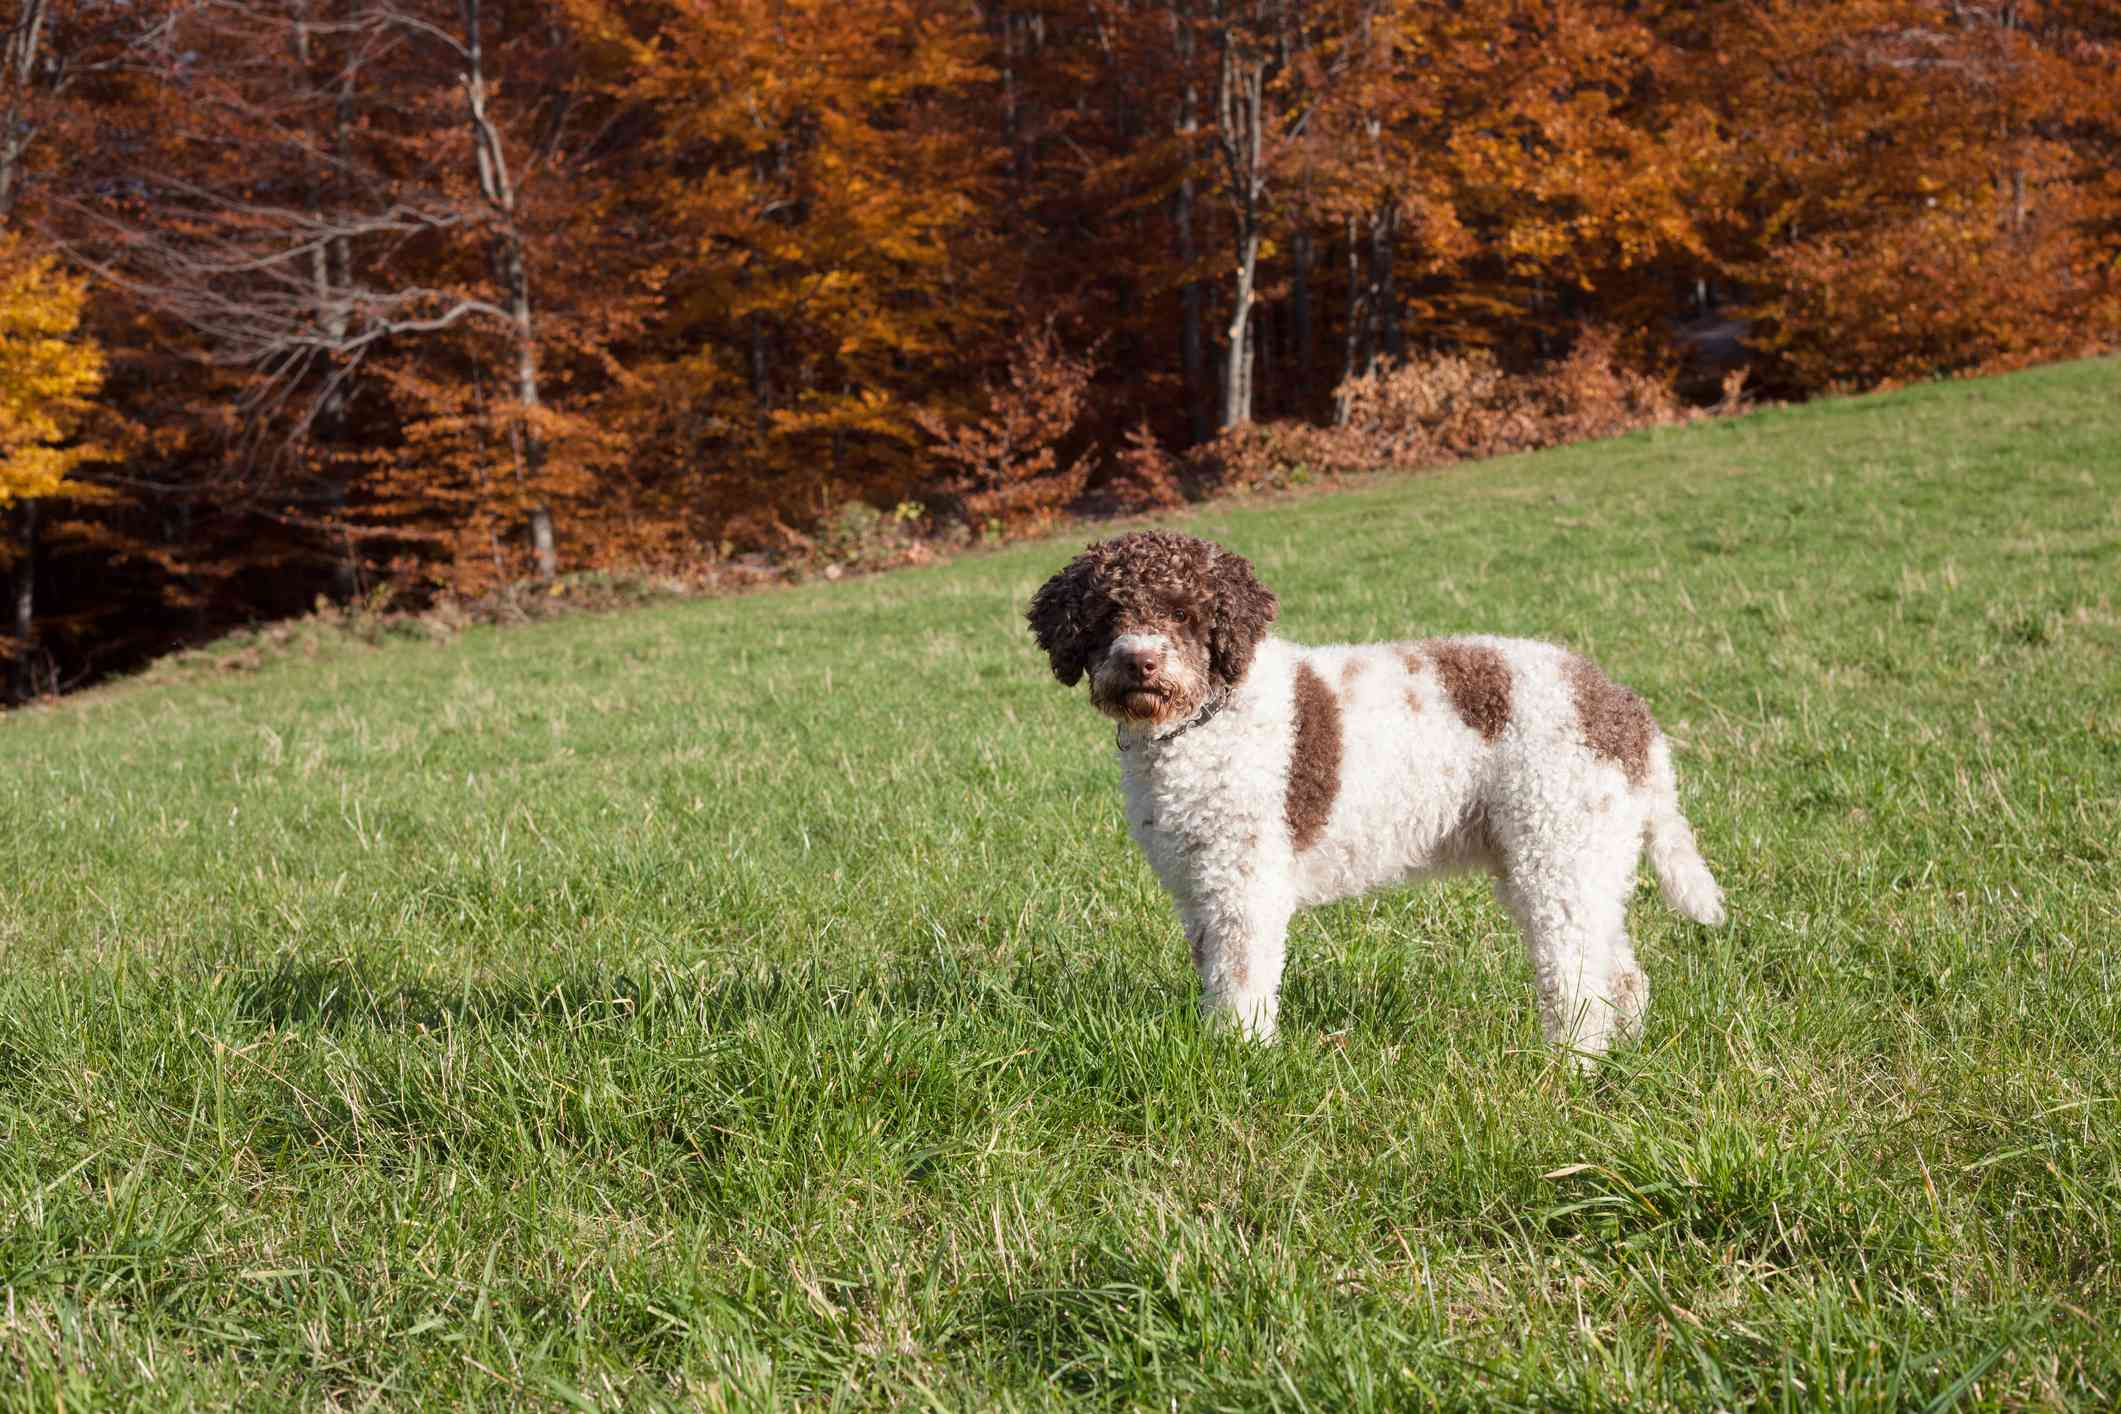 white lagotto romagnolo with brown markings stands on hill near woods in autumn